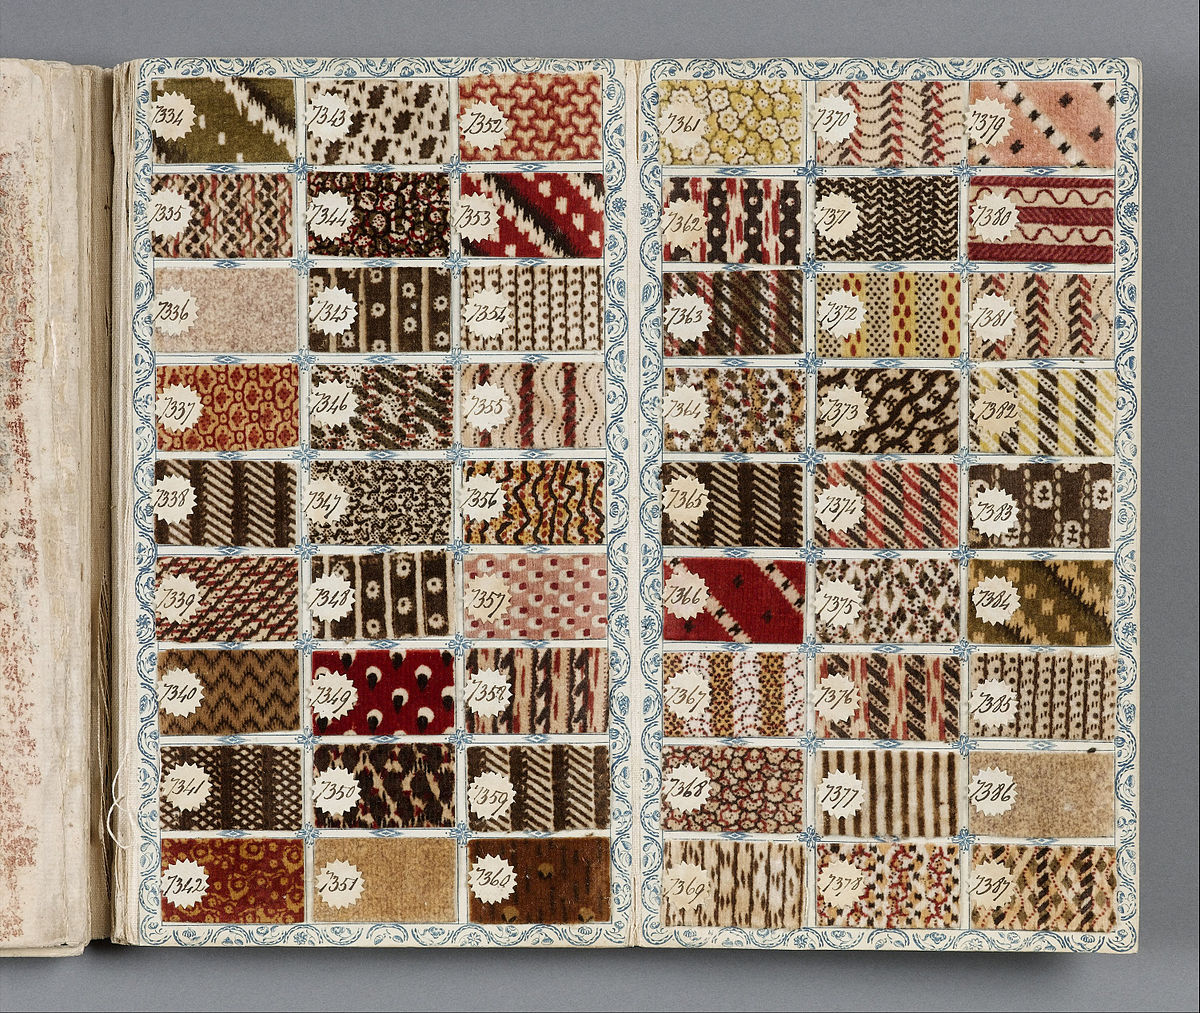 Textile sample - Wikipedia